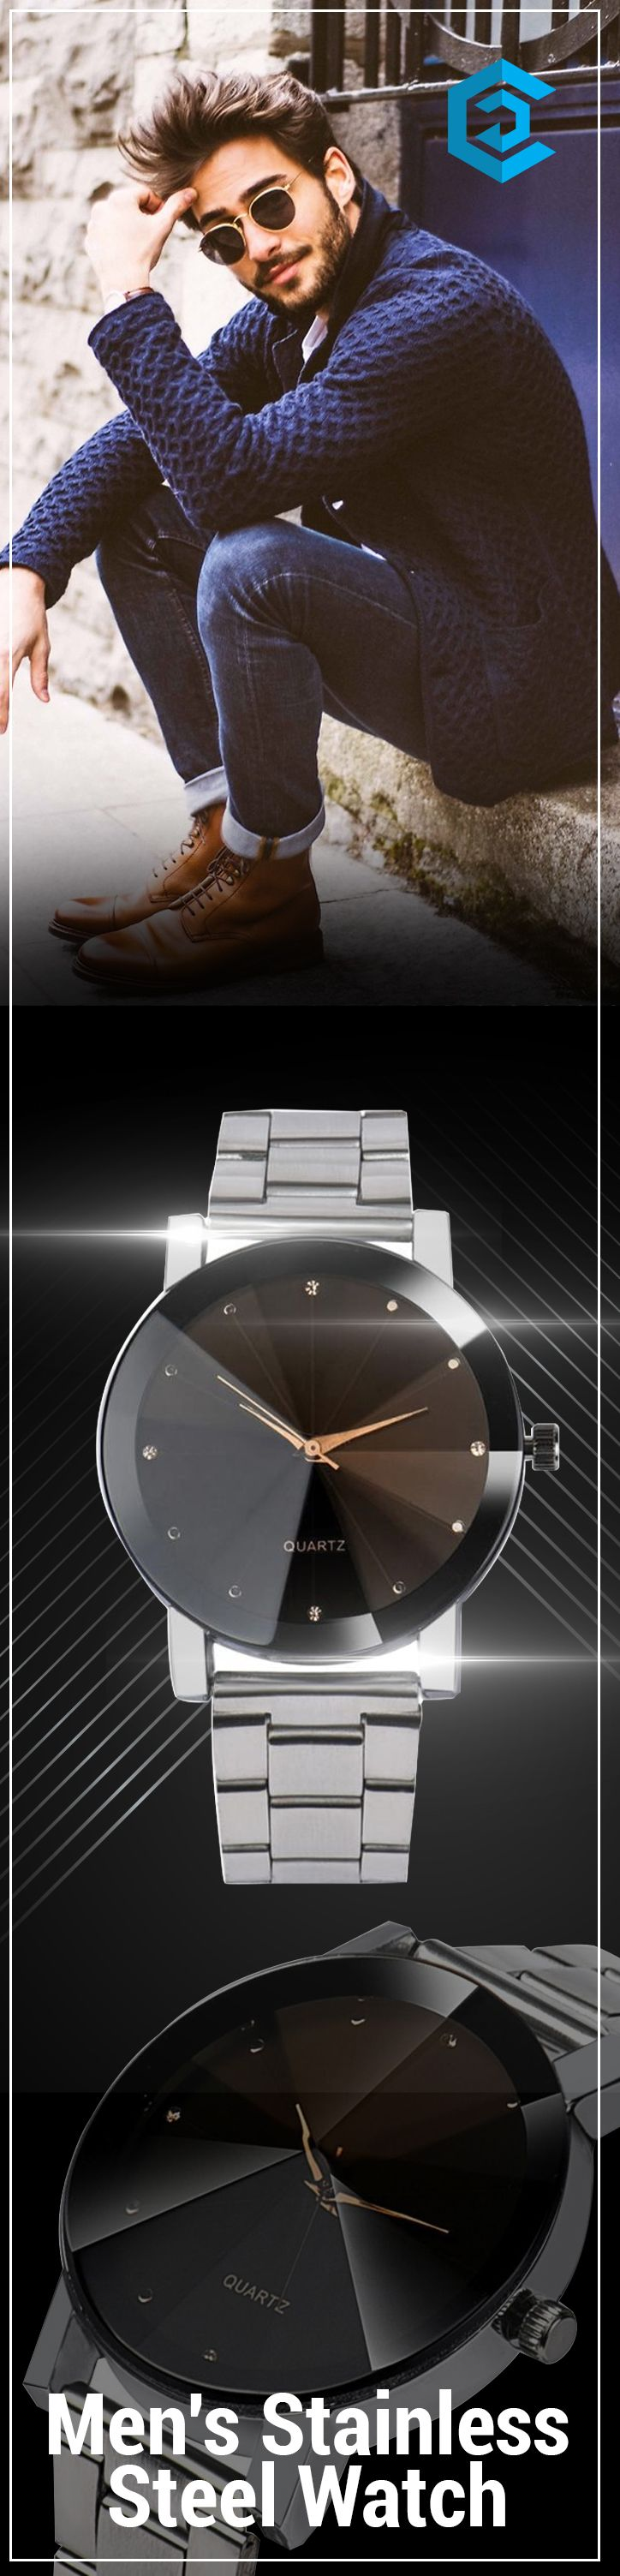 Men's Stainless Steel Watch | affordable | luxury | mens | simple | #watches #luxury #fashion #unique